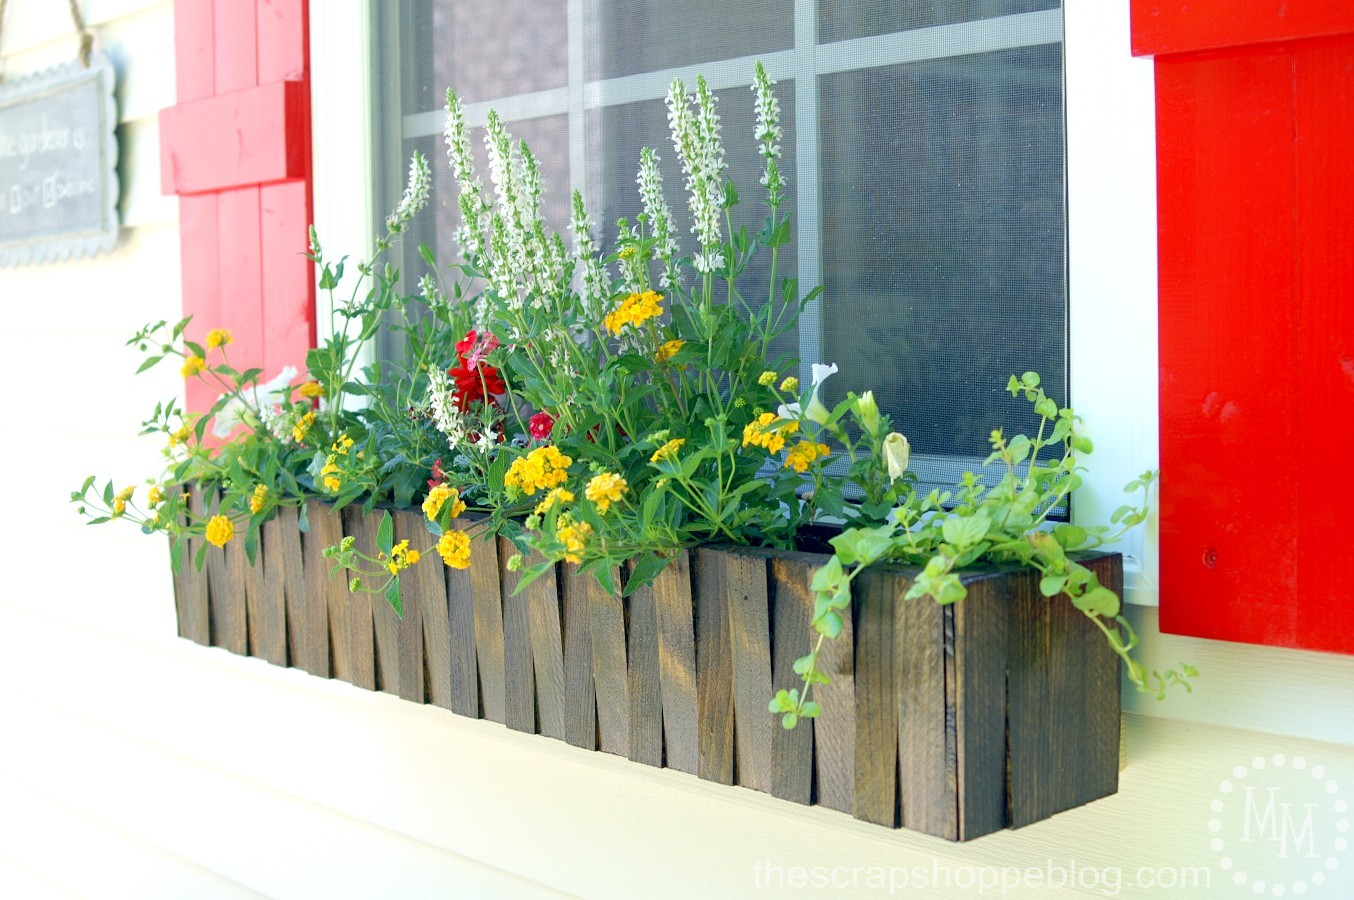 12 Awesome Home Improvement Ideas. Great DIY projects to upgrade your home on a budget | awonderfulthought.com